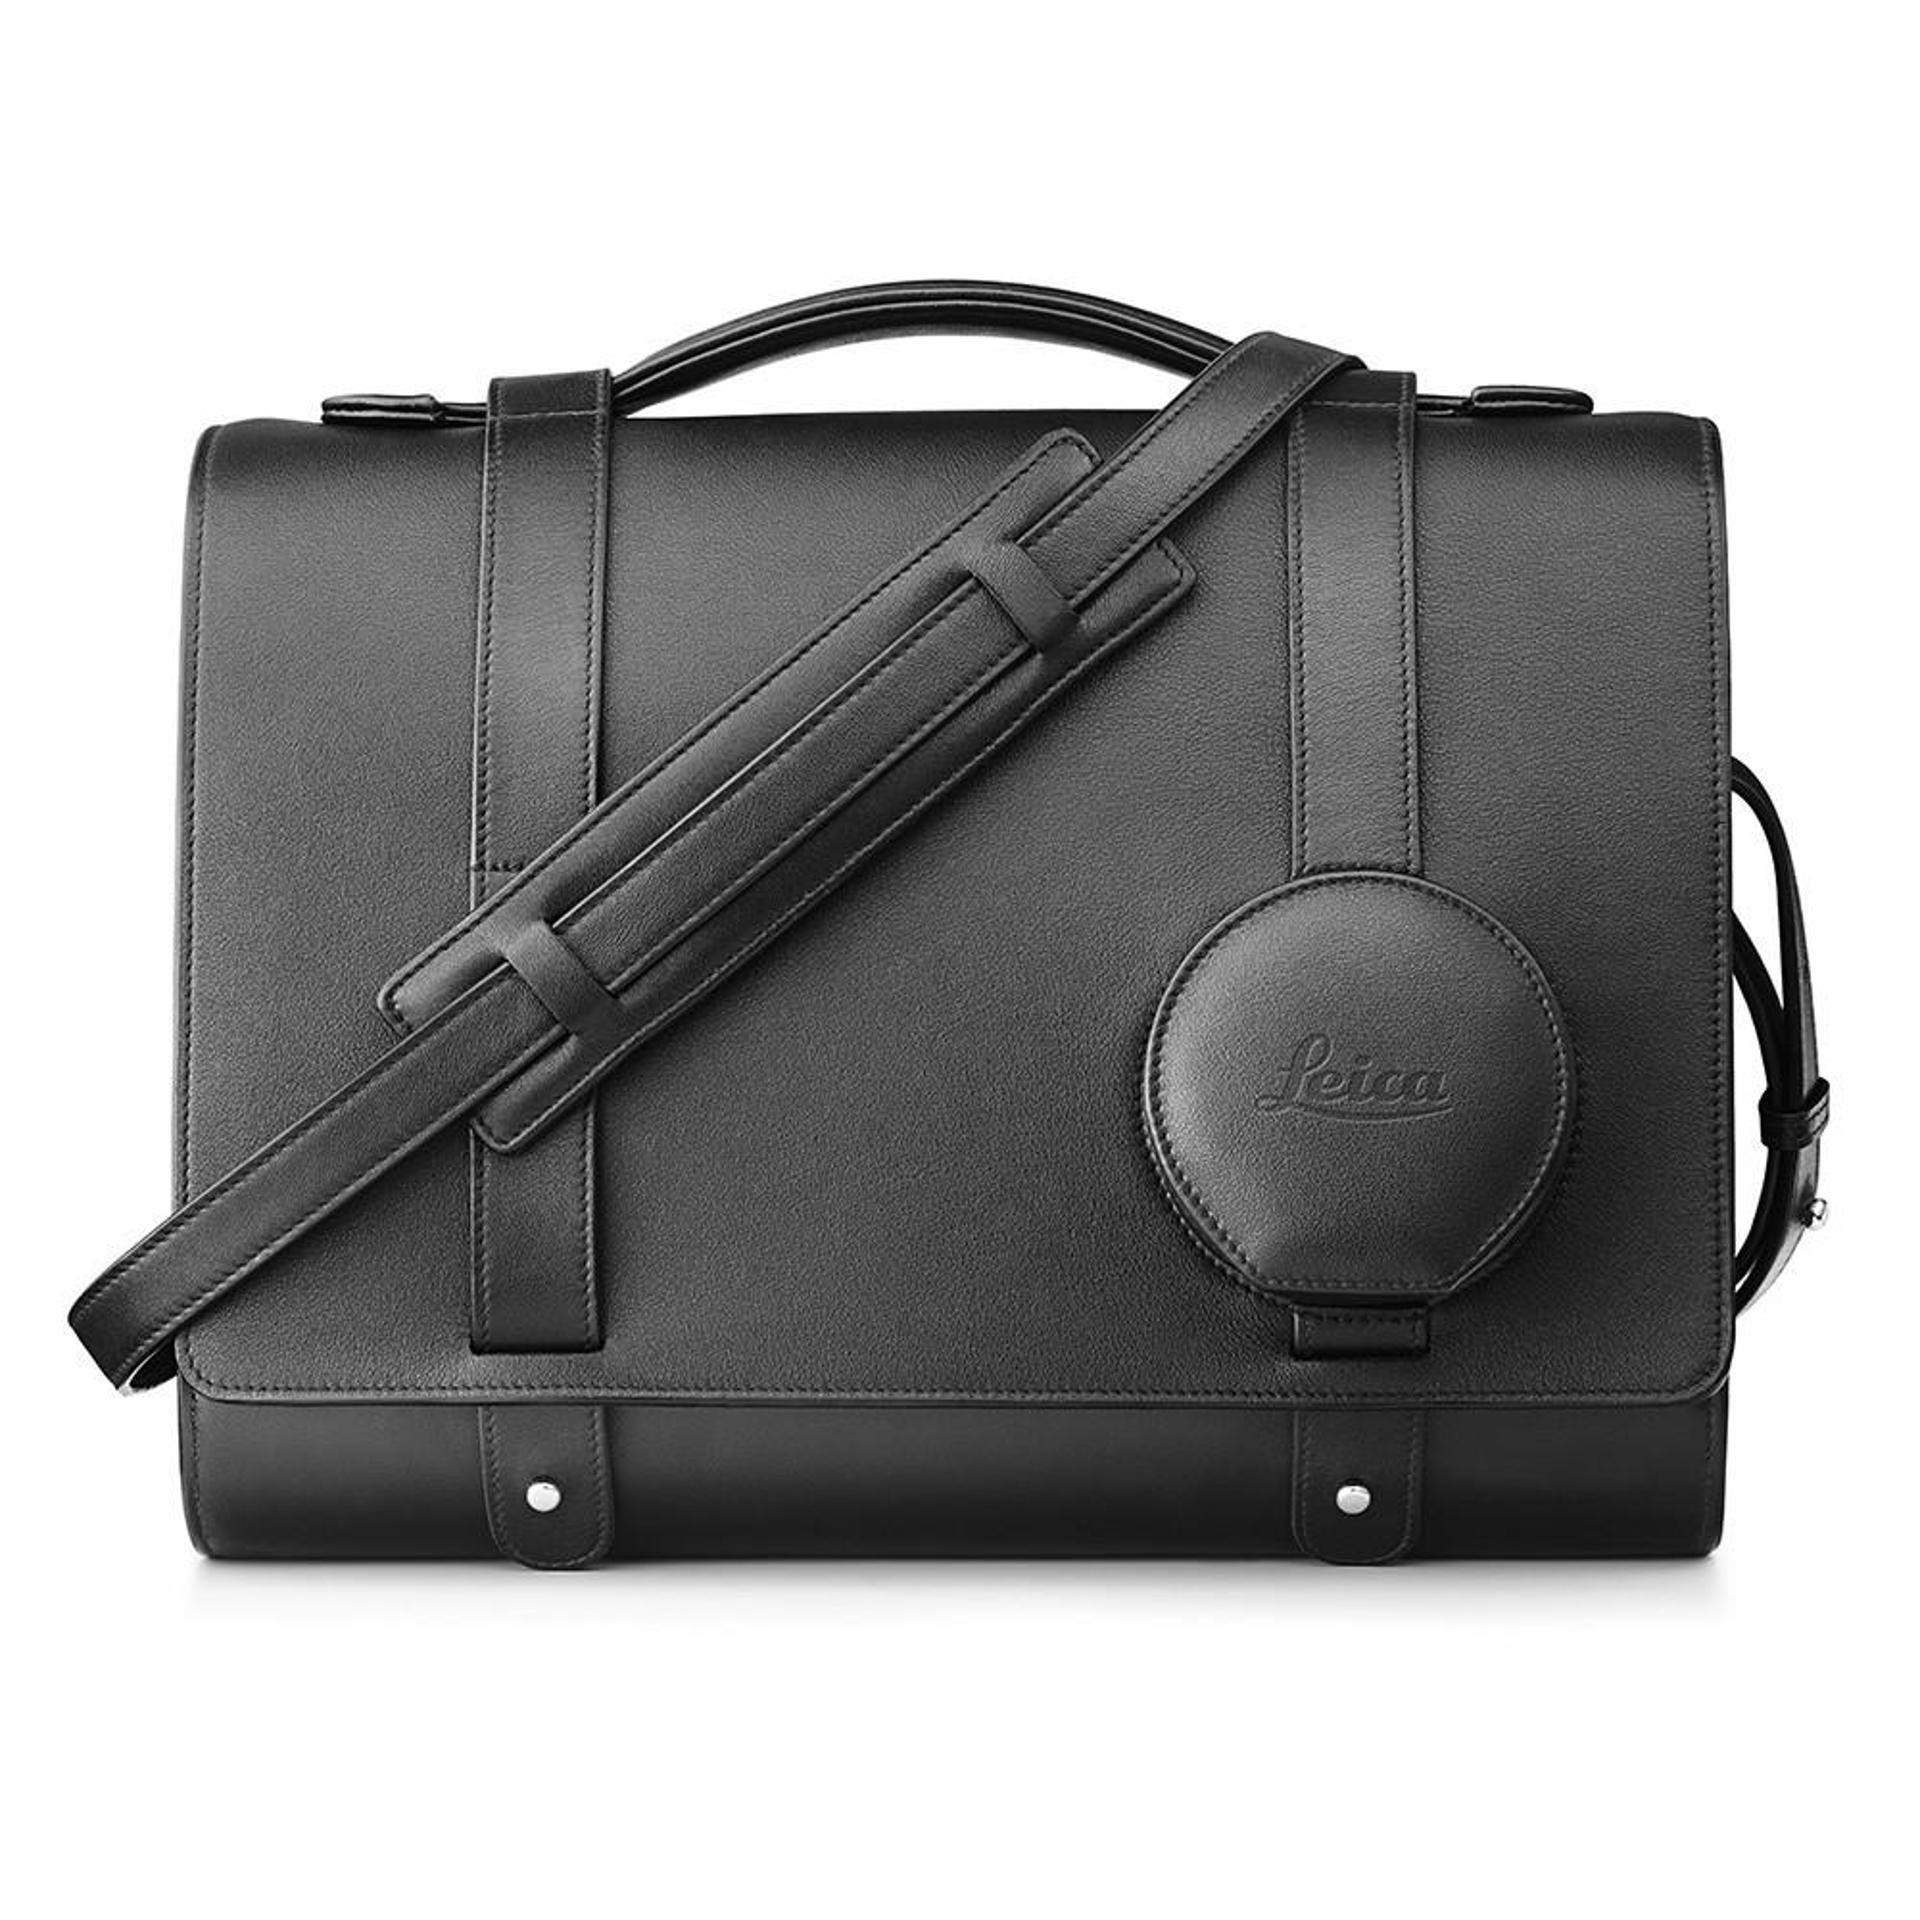 LEICA DAY BAG FOR LEICA Q, LEATHER BLACK